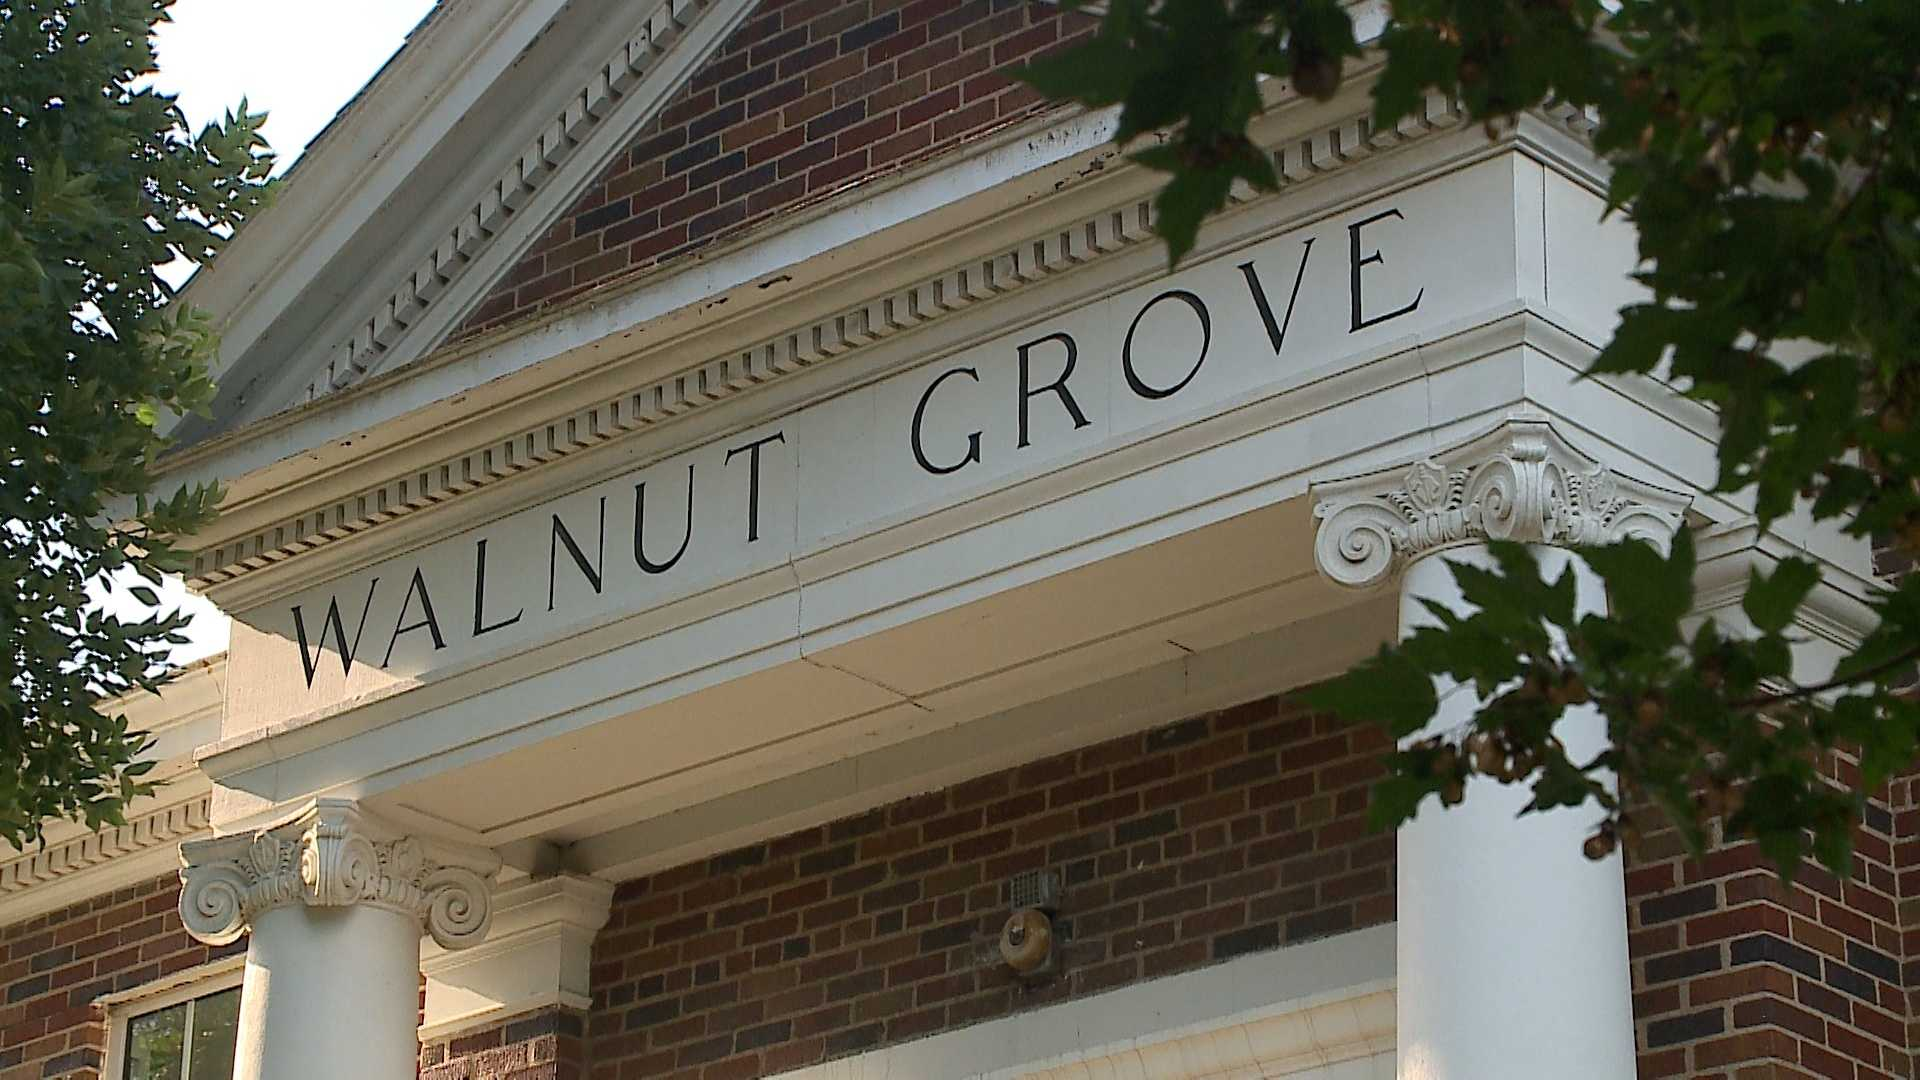 The Walnut Grove Elementary School building has been vacant for two years and neighbors recently helped clean it up.